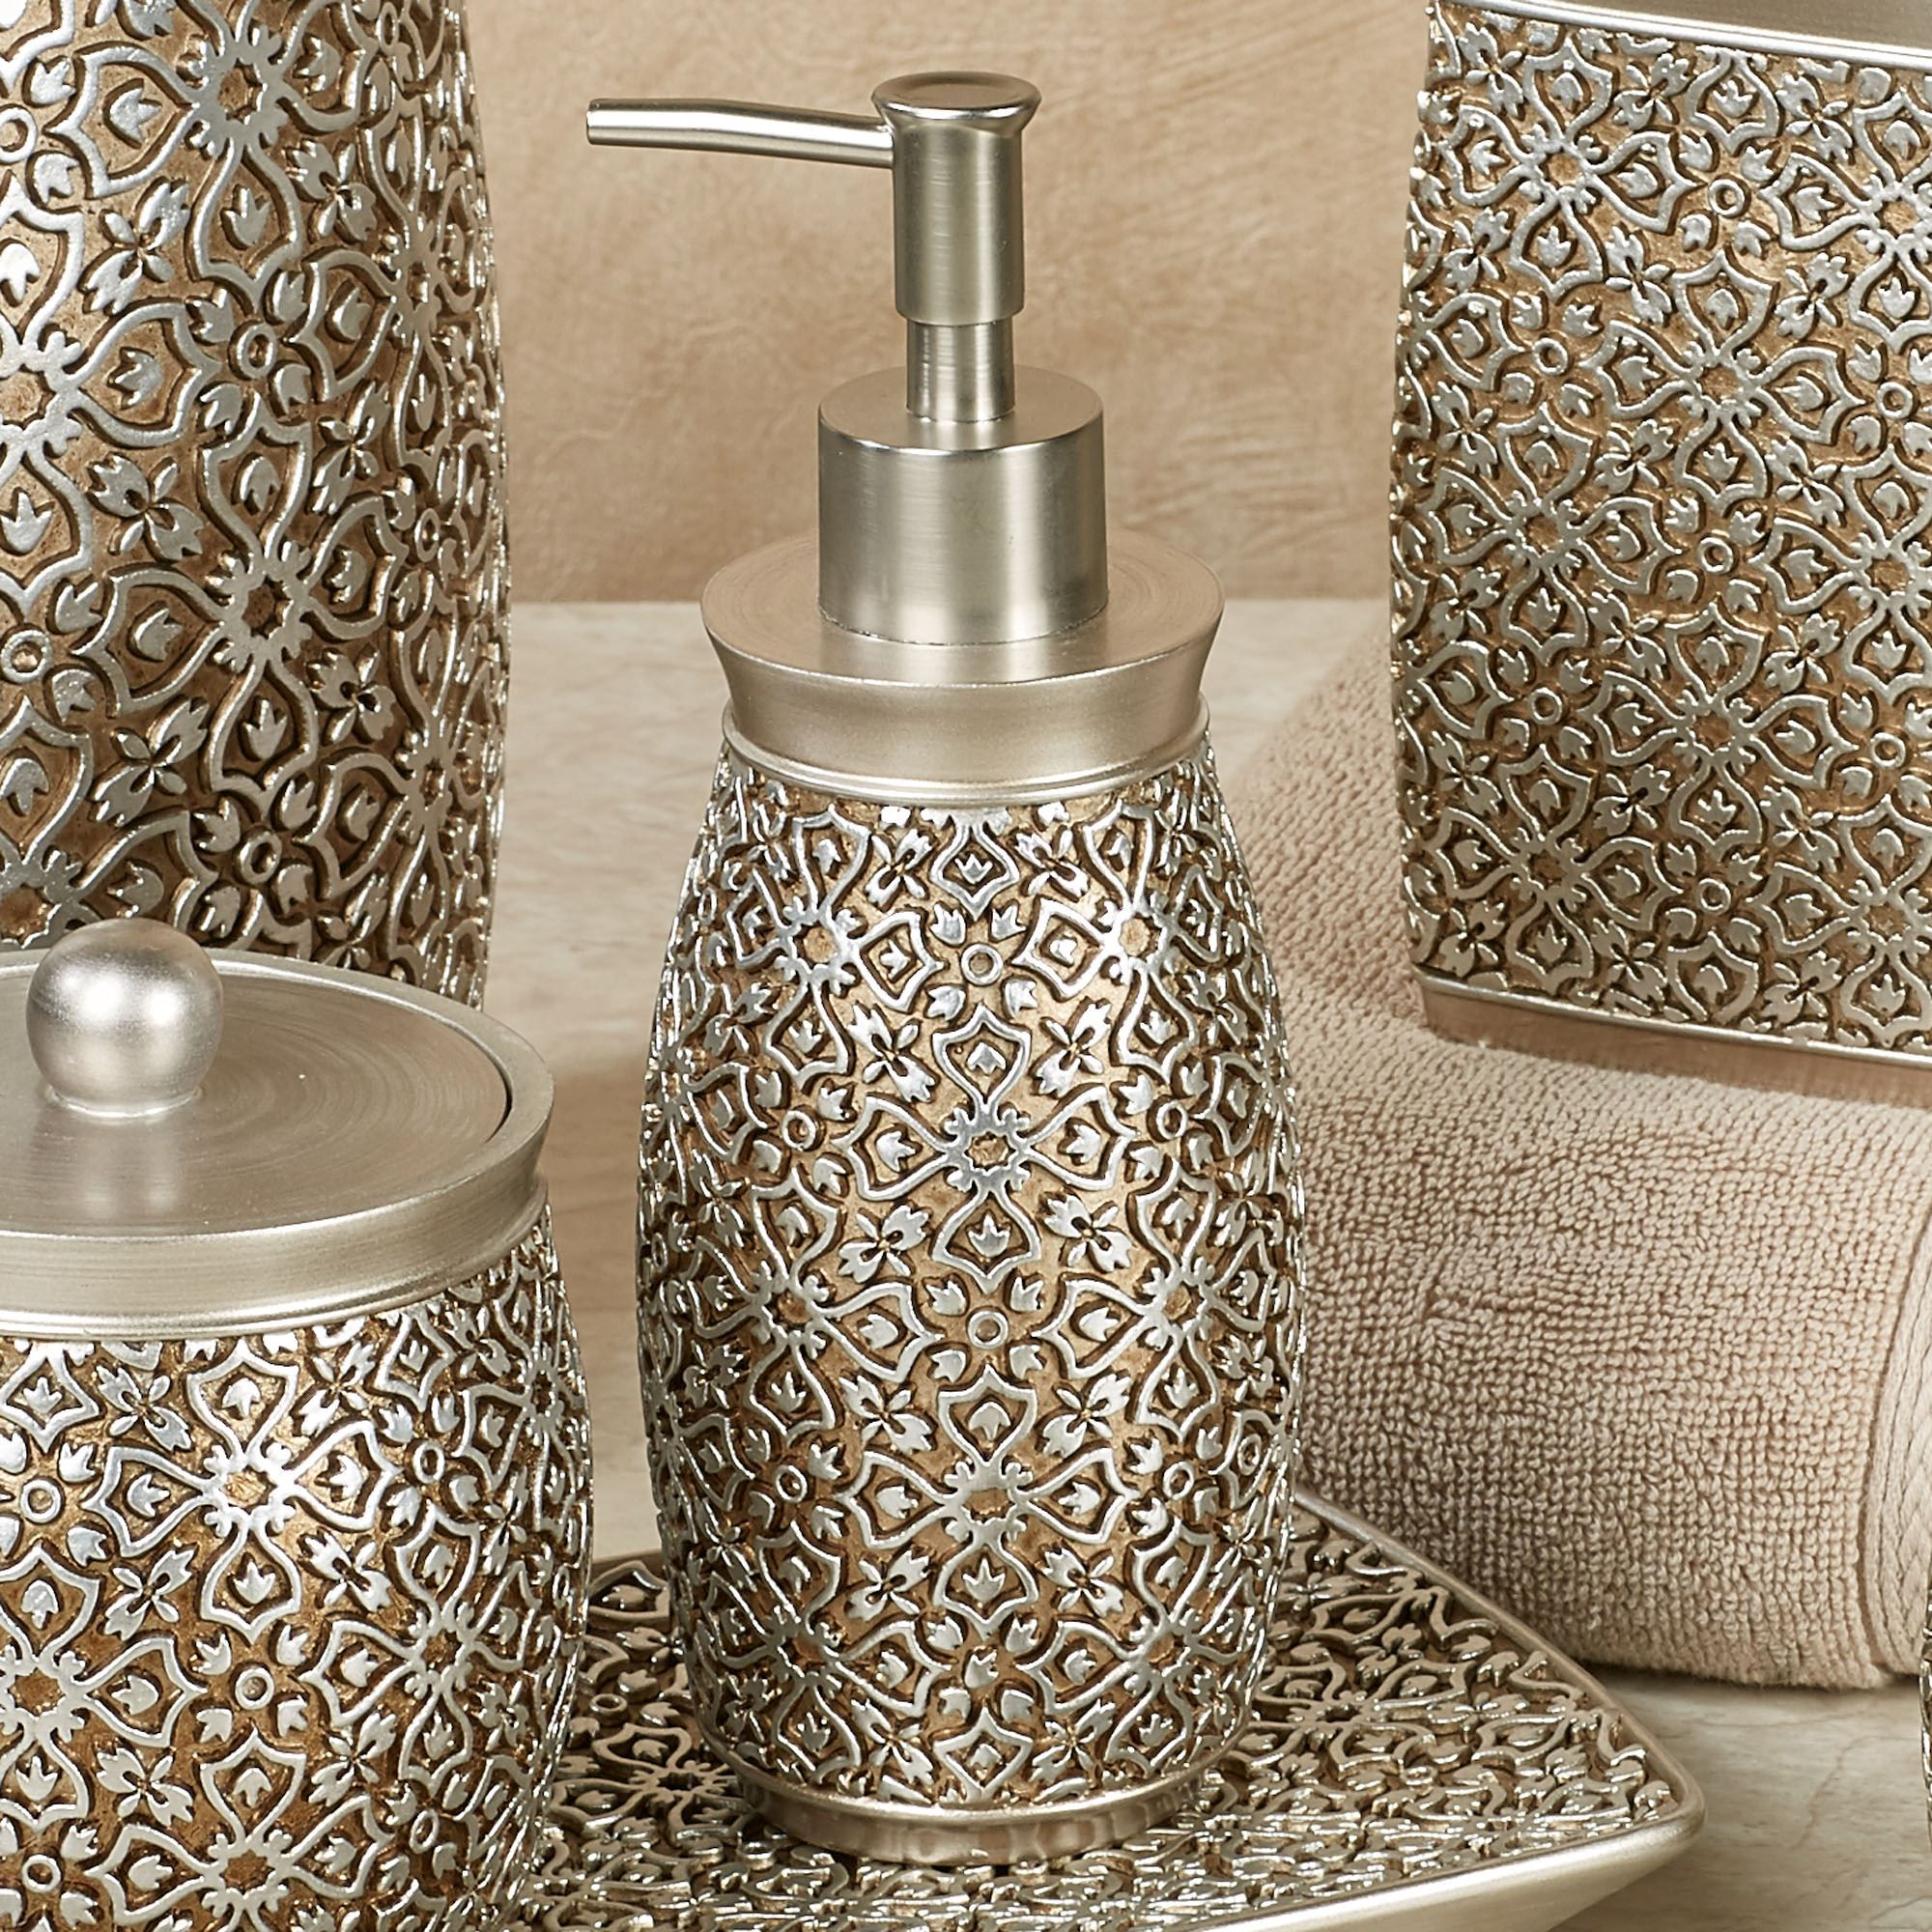 Bathroom Accessories Gold, Most Breathtaking as well as